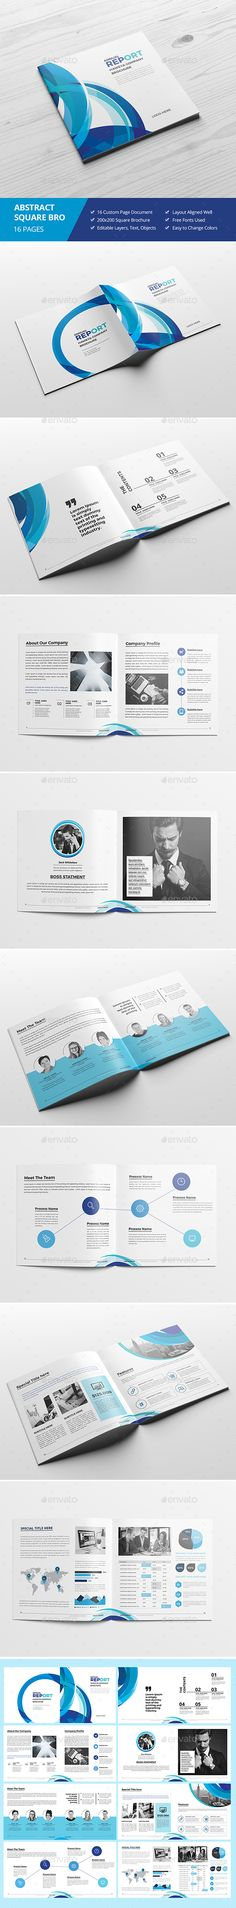 Abstract Brochure \/ Catalog InDesign Template #booklet - medical brochure template